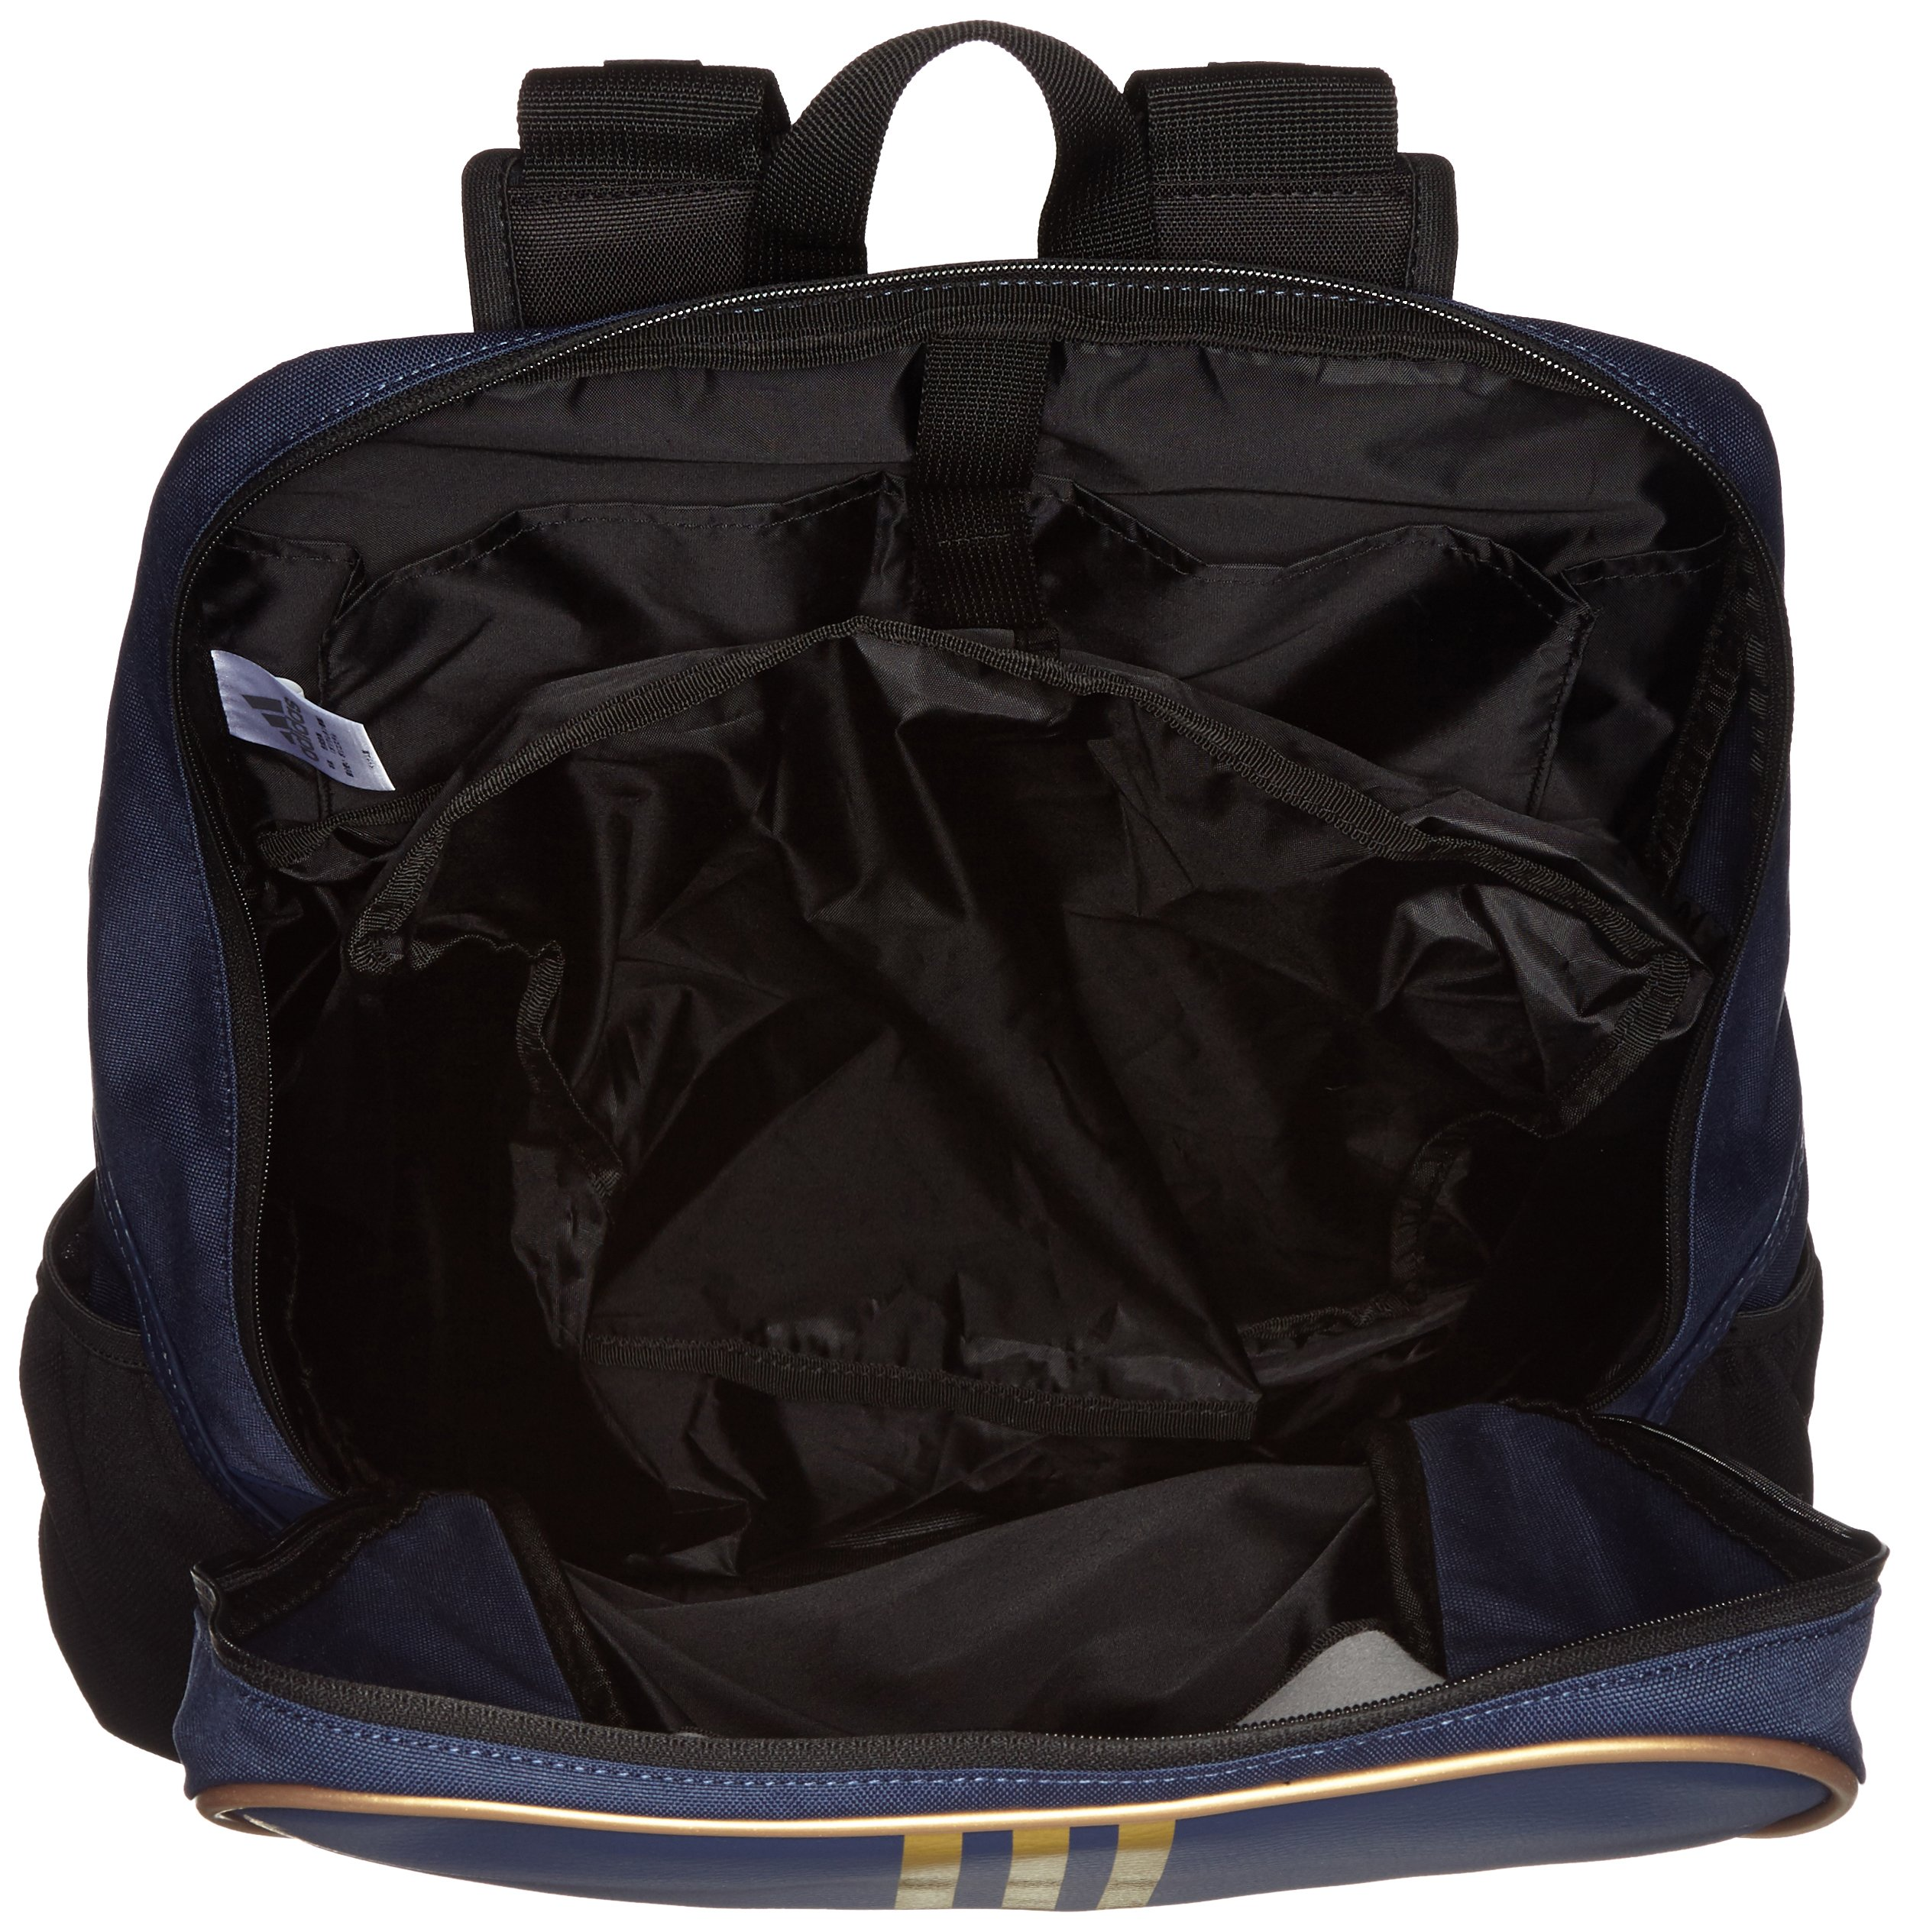 adidas Professional backpack BIN37 AP2768 (College Navy / Gold Met) by adidas (Image #3)